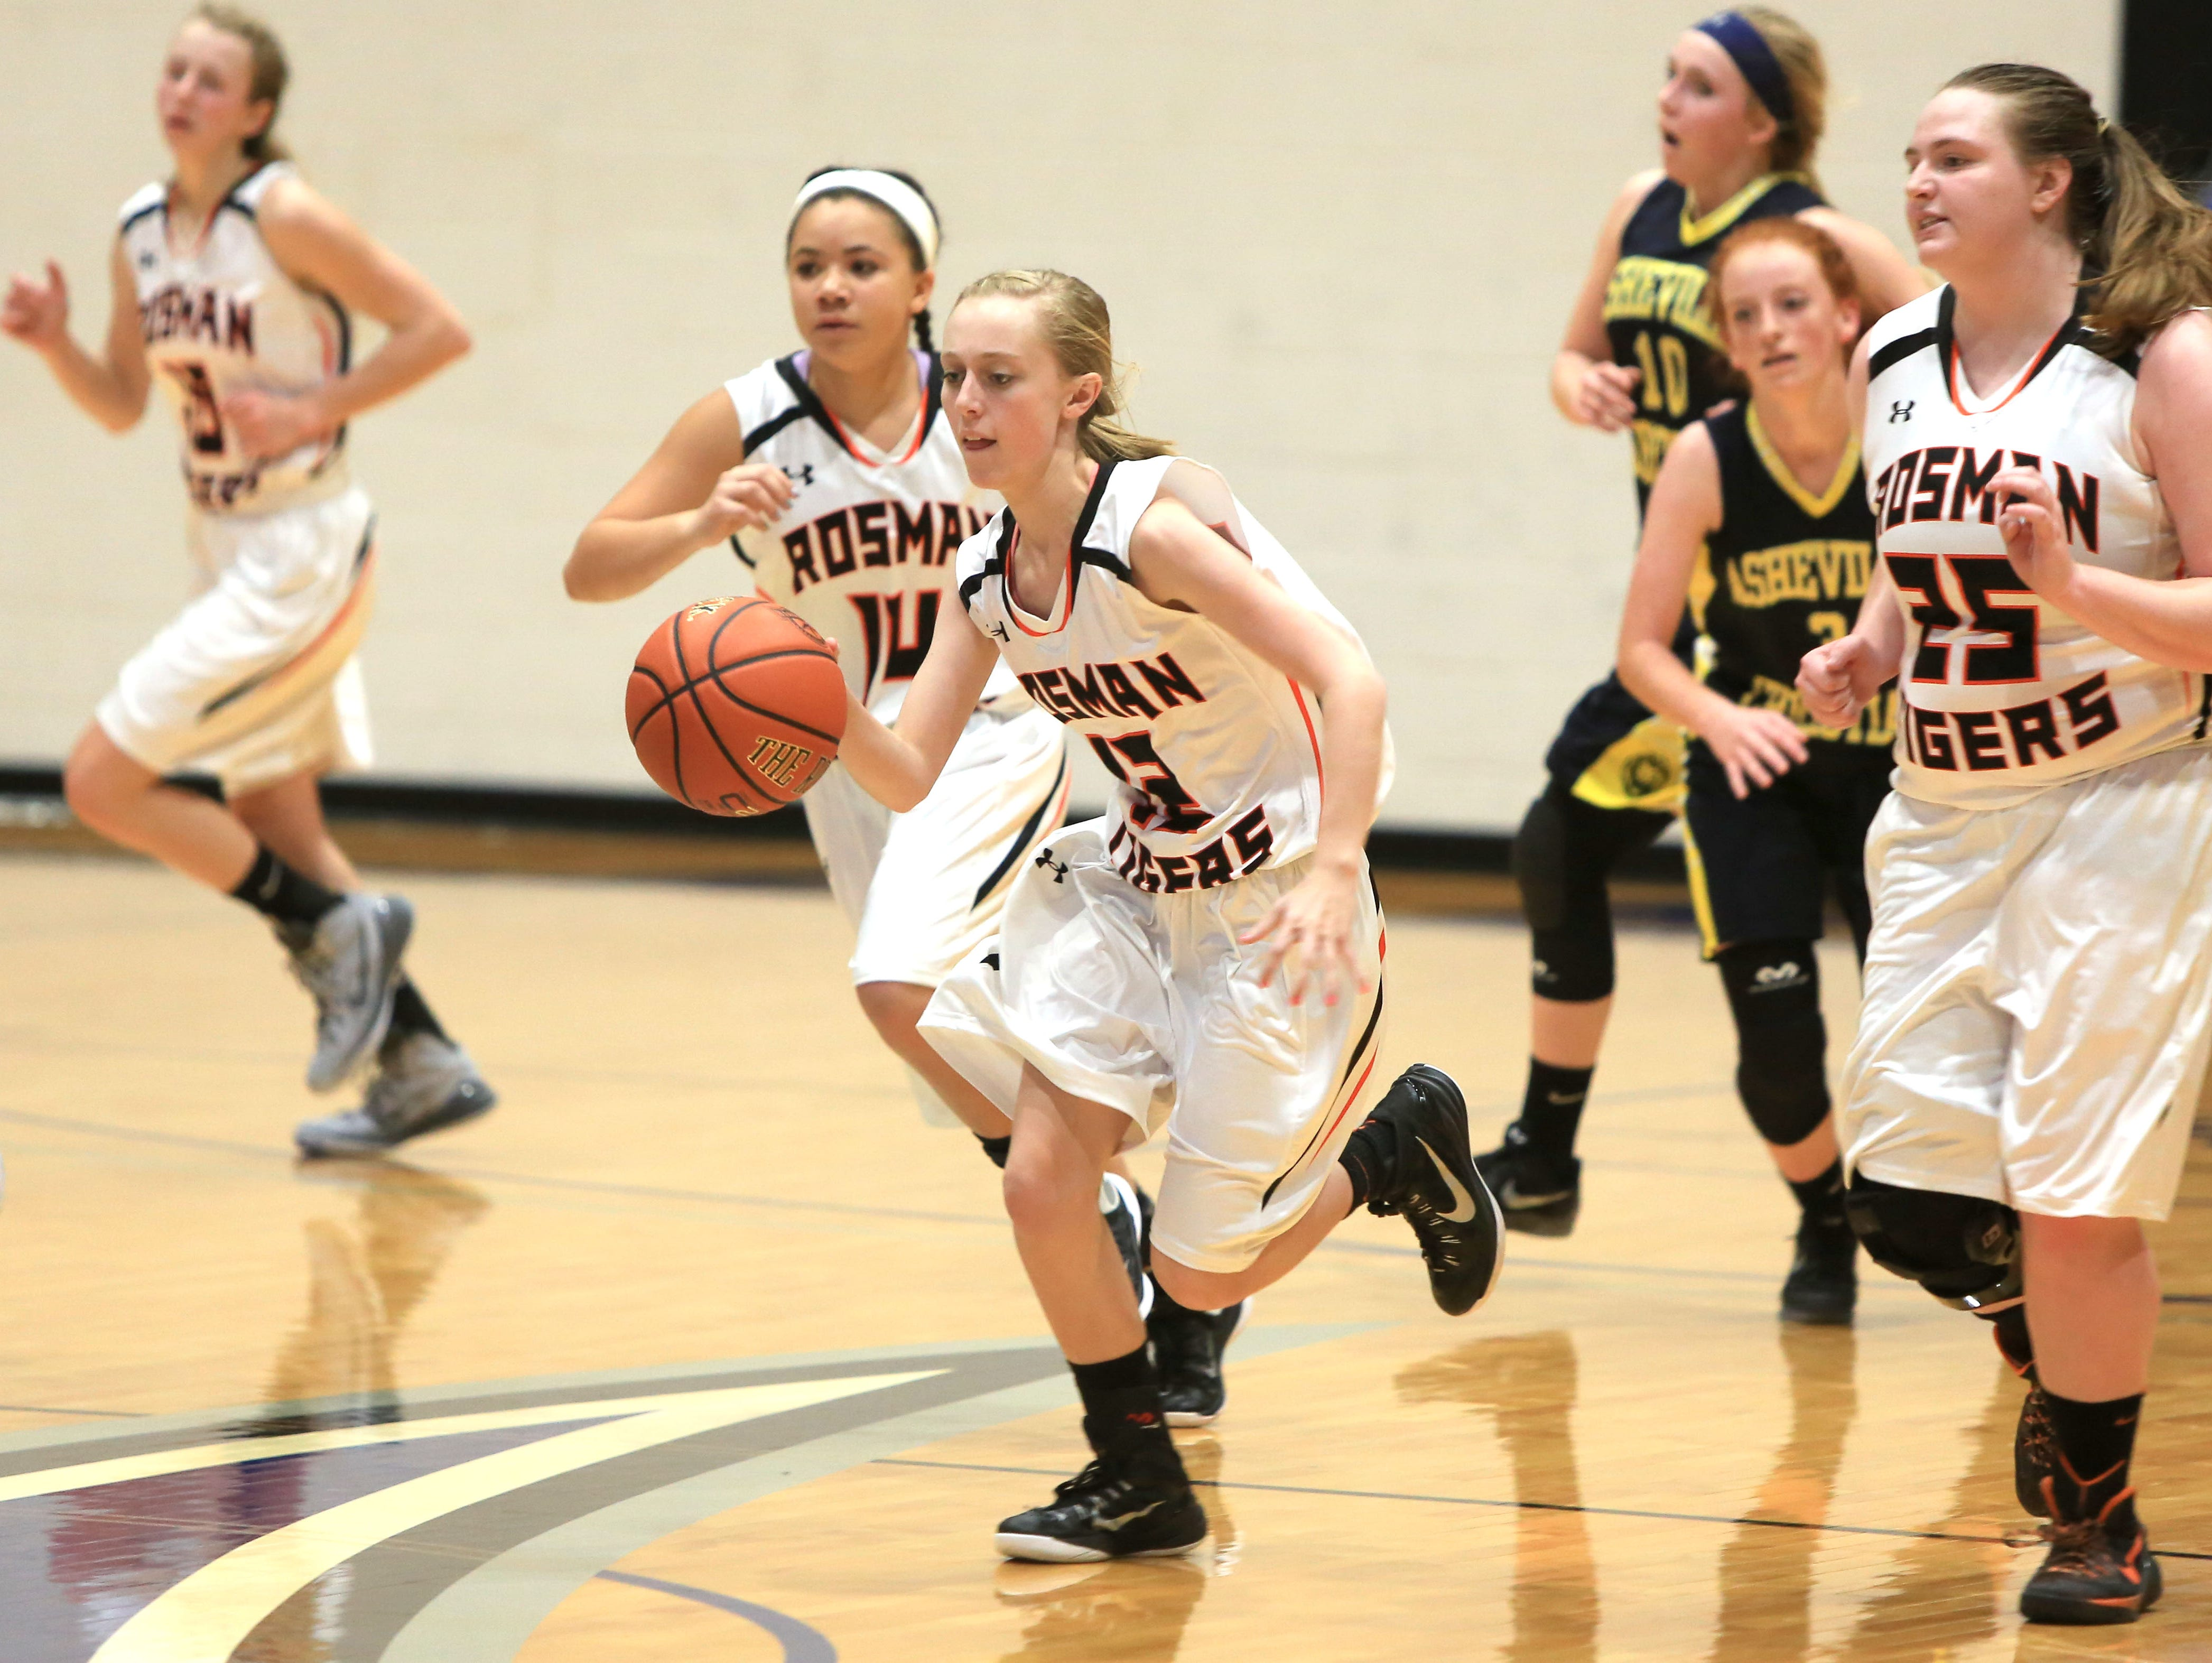 The Rosman girls basketball team is in Wednesday's championship finals of the Wells Fargo WNC Holiday Classic at UNC Asheville.